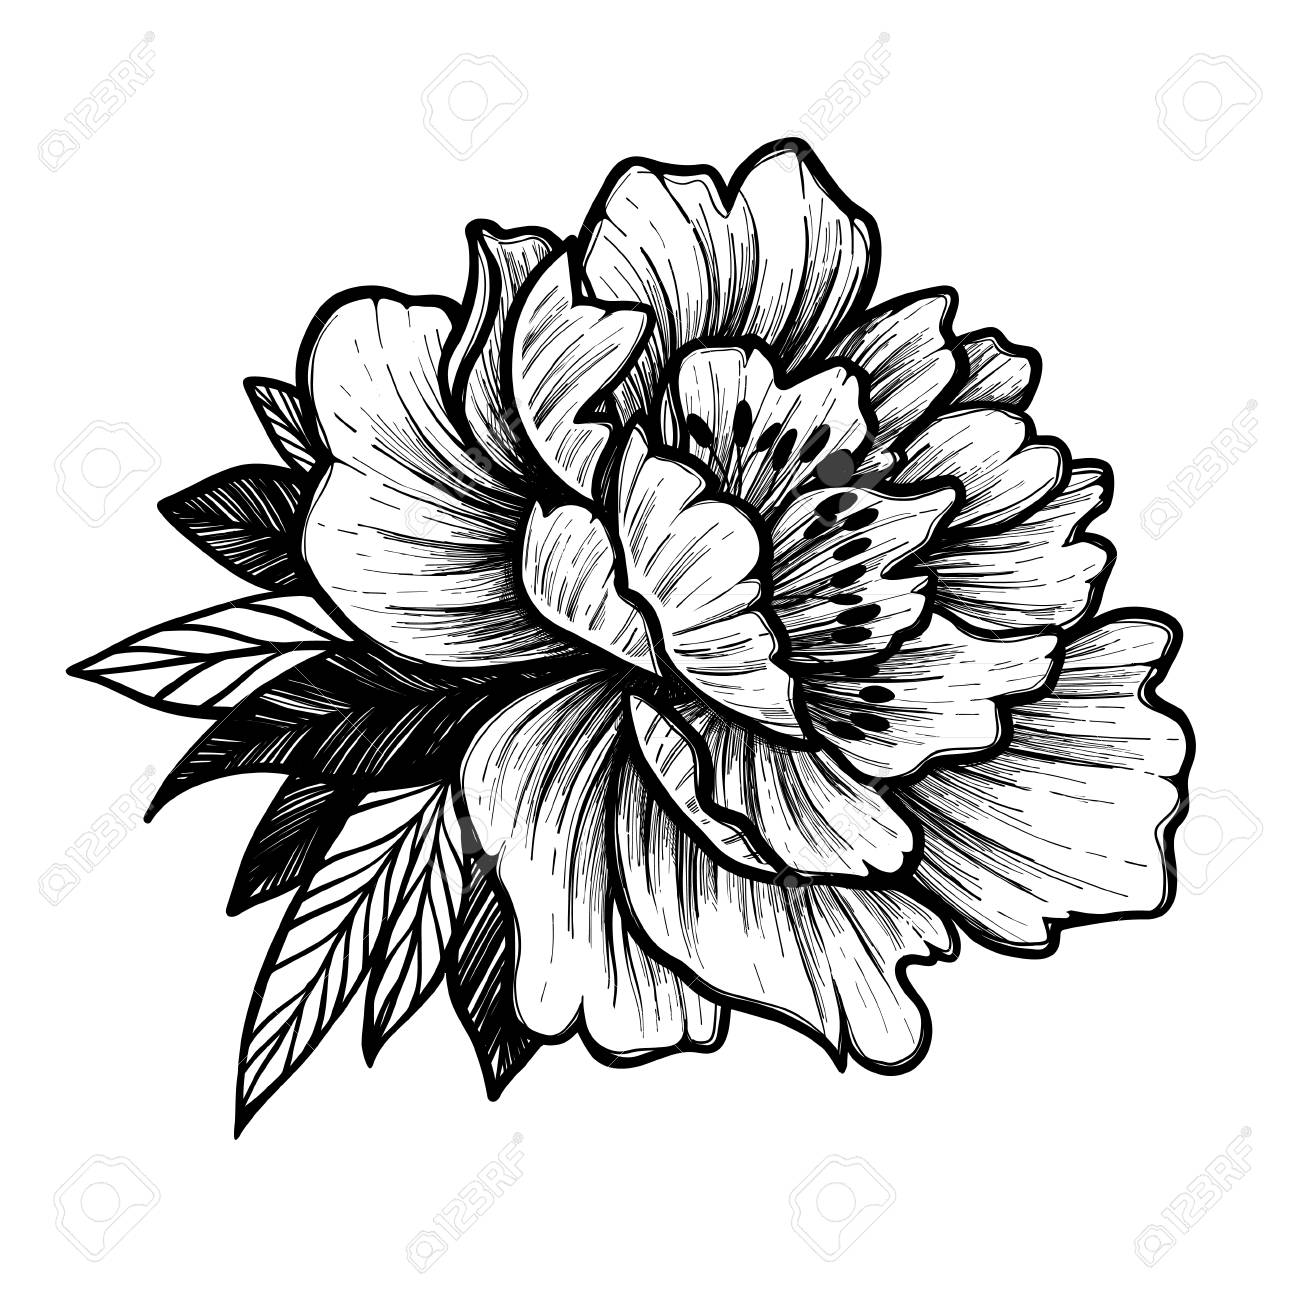 Hand Drawn Vector Illustration Peony Flower Floral Tattoo Royalty Free Cliparts Vectors And Stock Illustration Image 72095586